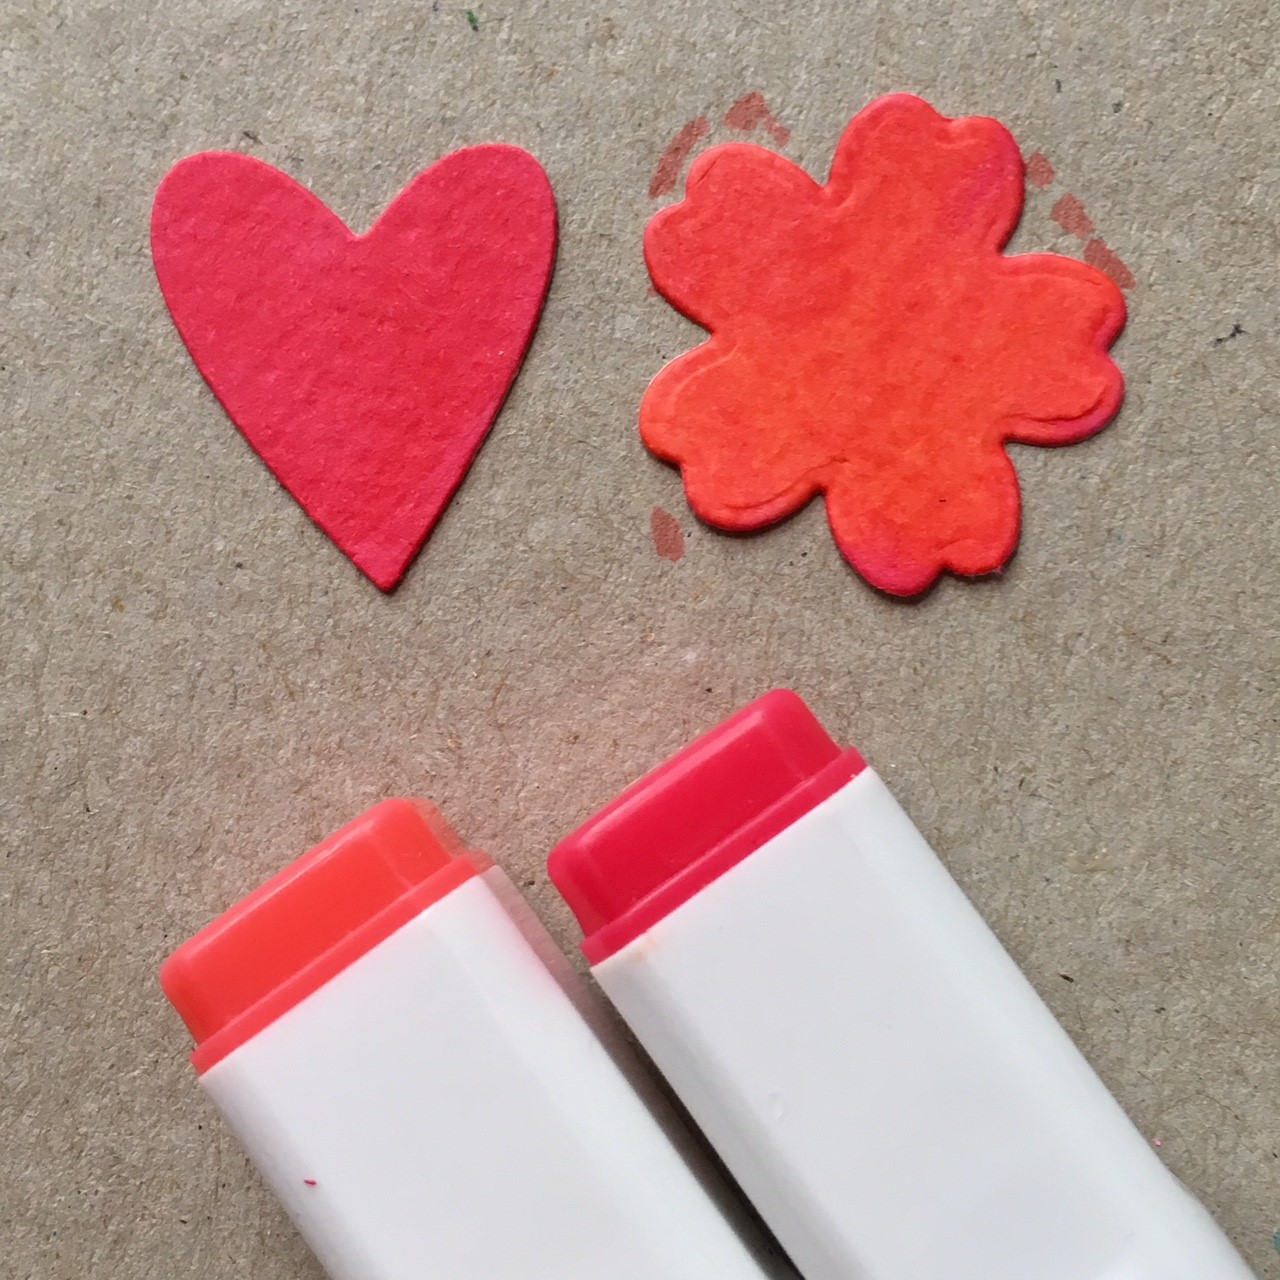 heart and flower shape, coloured with alcohol based markers in strong red and orange-red